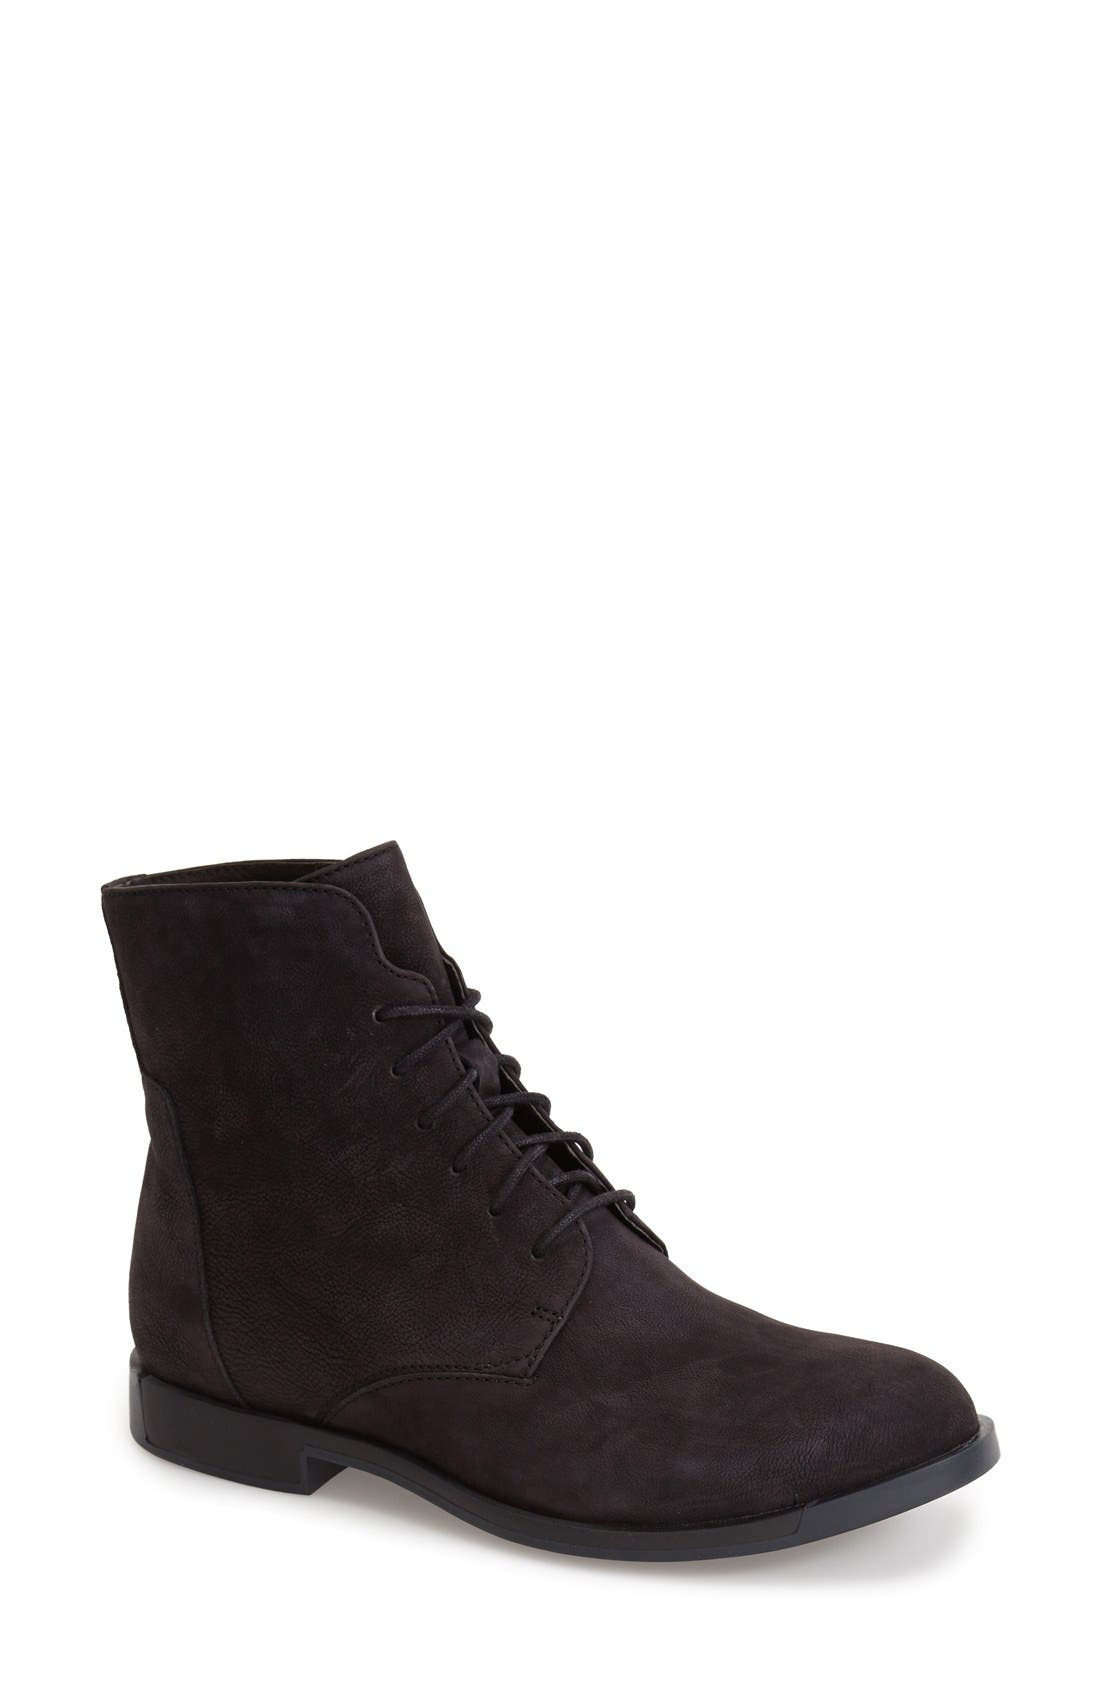 Alternate Image 1 Selected - Camper Lace-Up Bootie (Women)